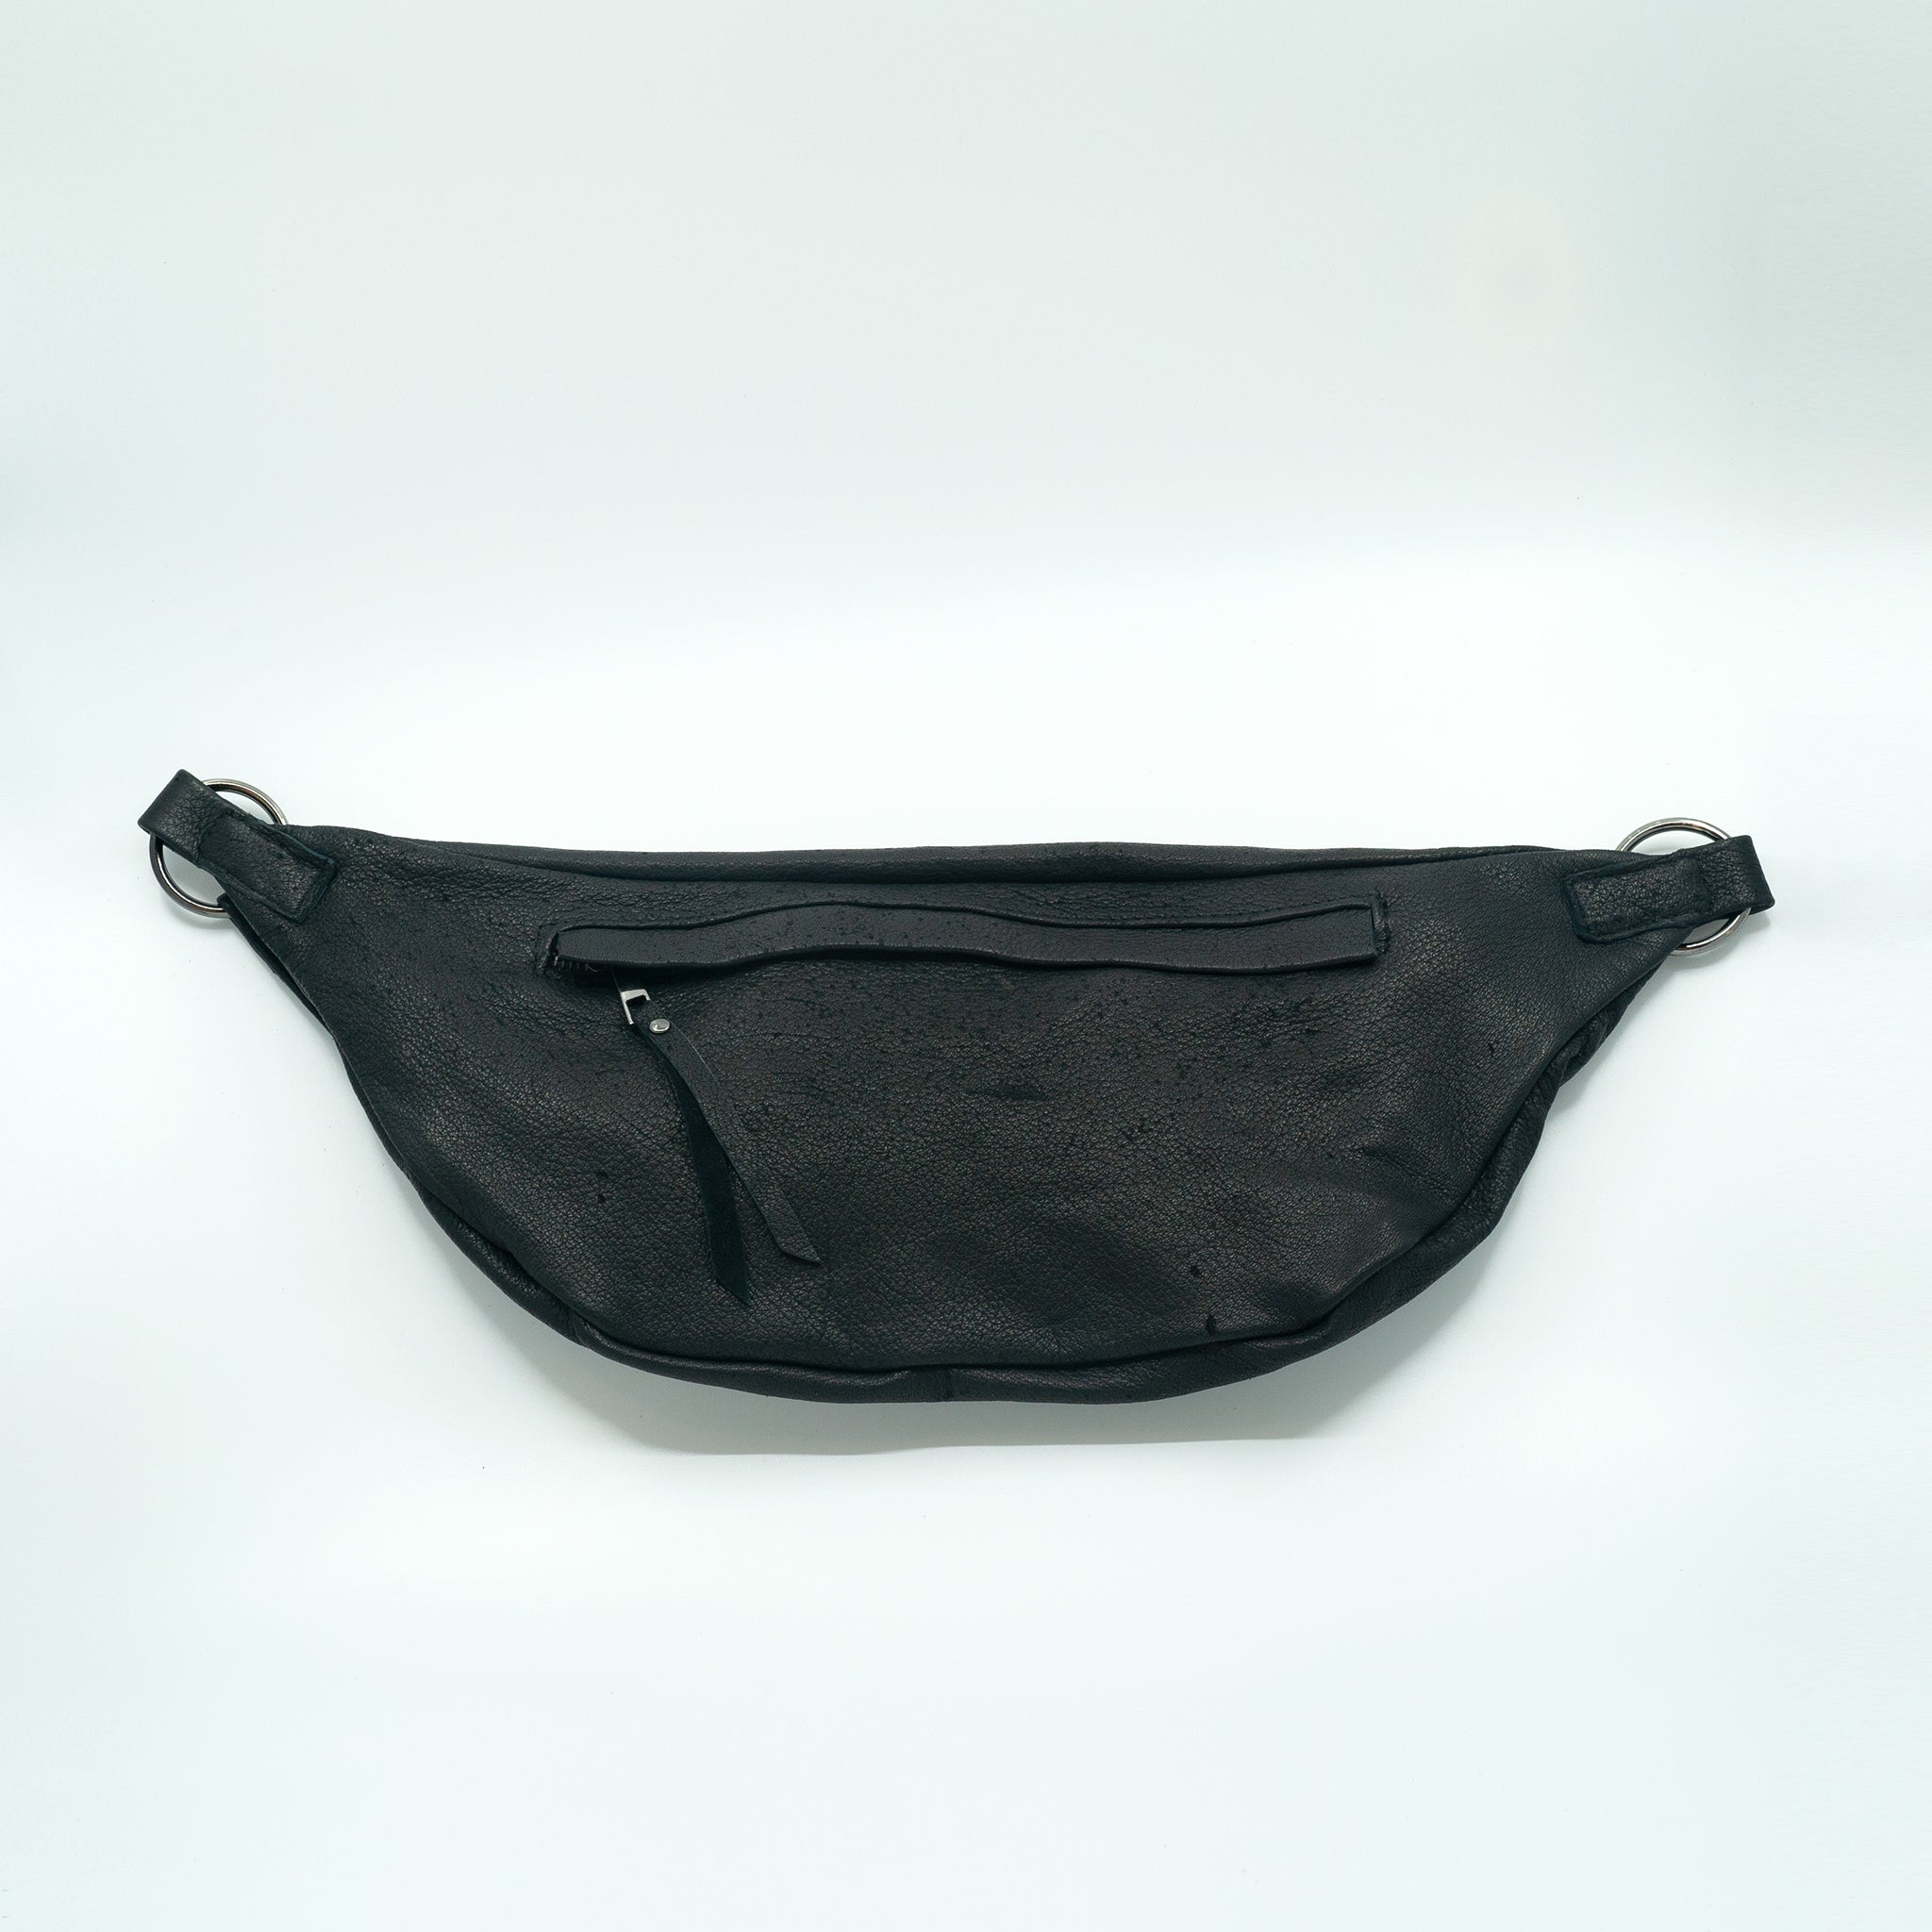 The Everywhere Bag #2 — Ultrasoft, Distressed Black Leather with Gunmetal Hardware